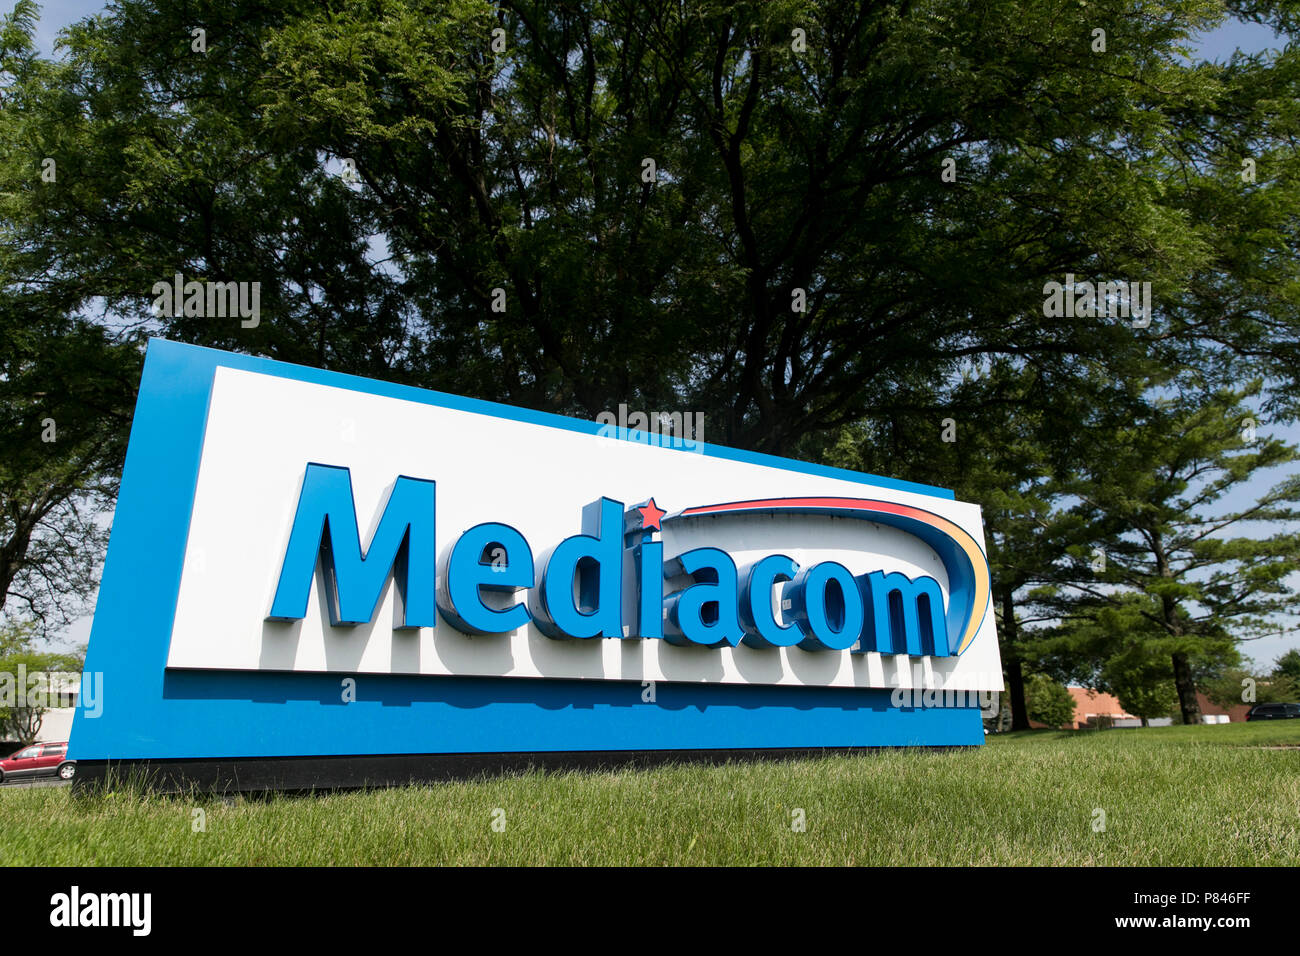 A logo sign outside of a facility occupied by Mediacom